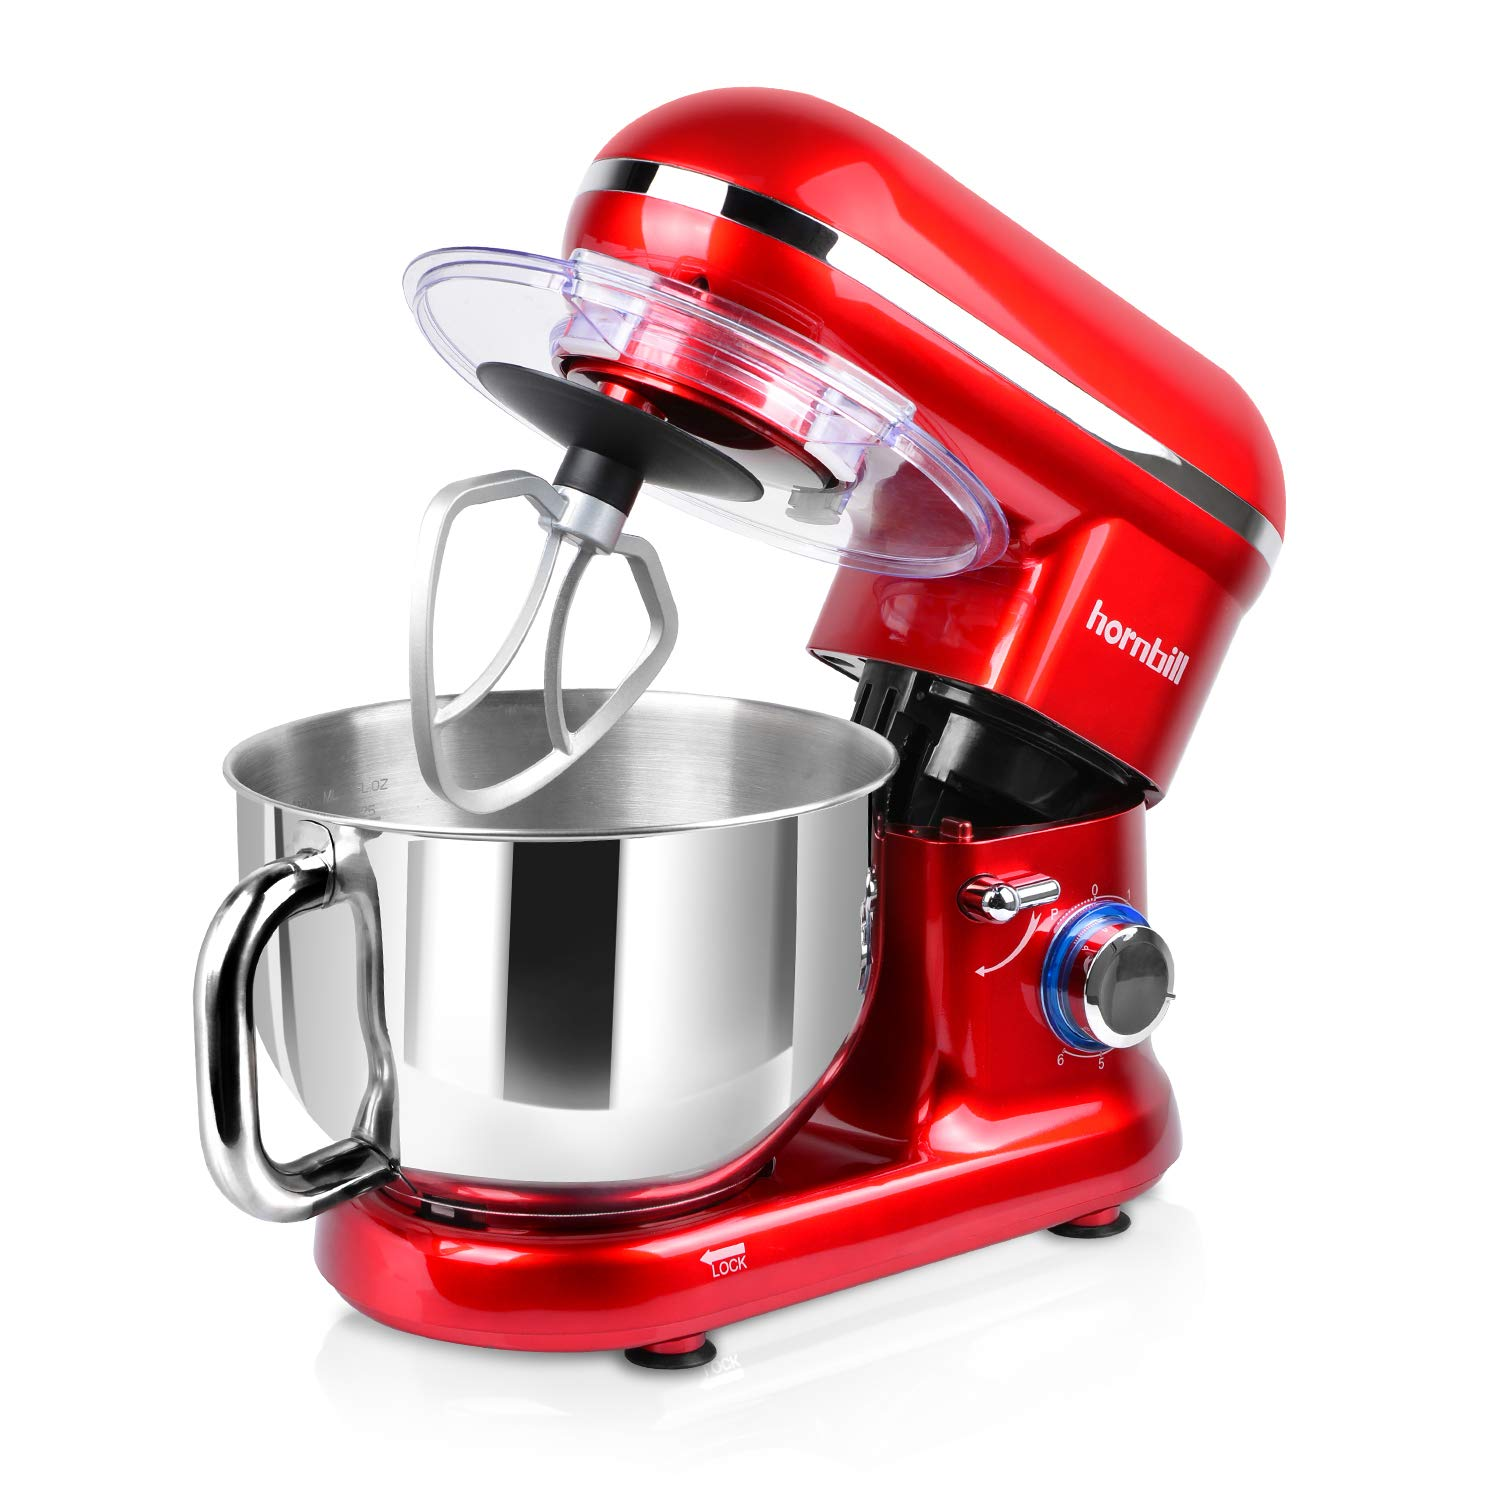 Hornbill Tilt-head Stand Mixer, Electric Mixer 600W 6-Speed 5-Quart Stainless Steel Bowl Professional Kitchen Mixer With Dough Hook, Whisk, Beater(Red) by Hornbill (Image #1)